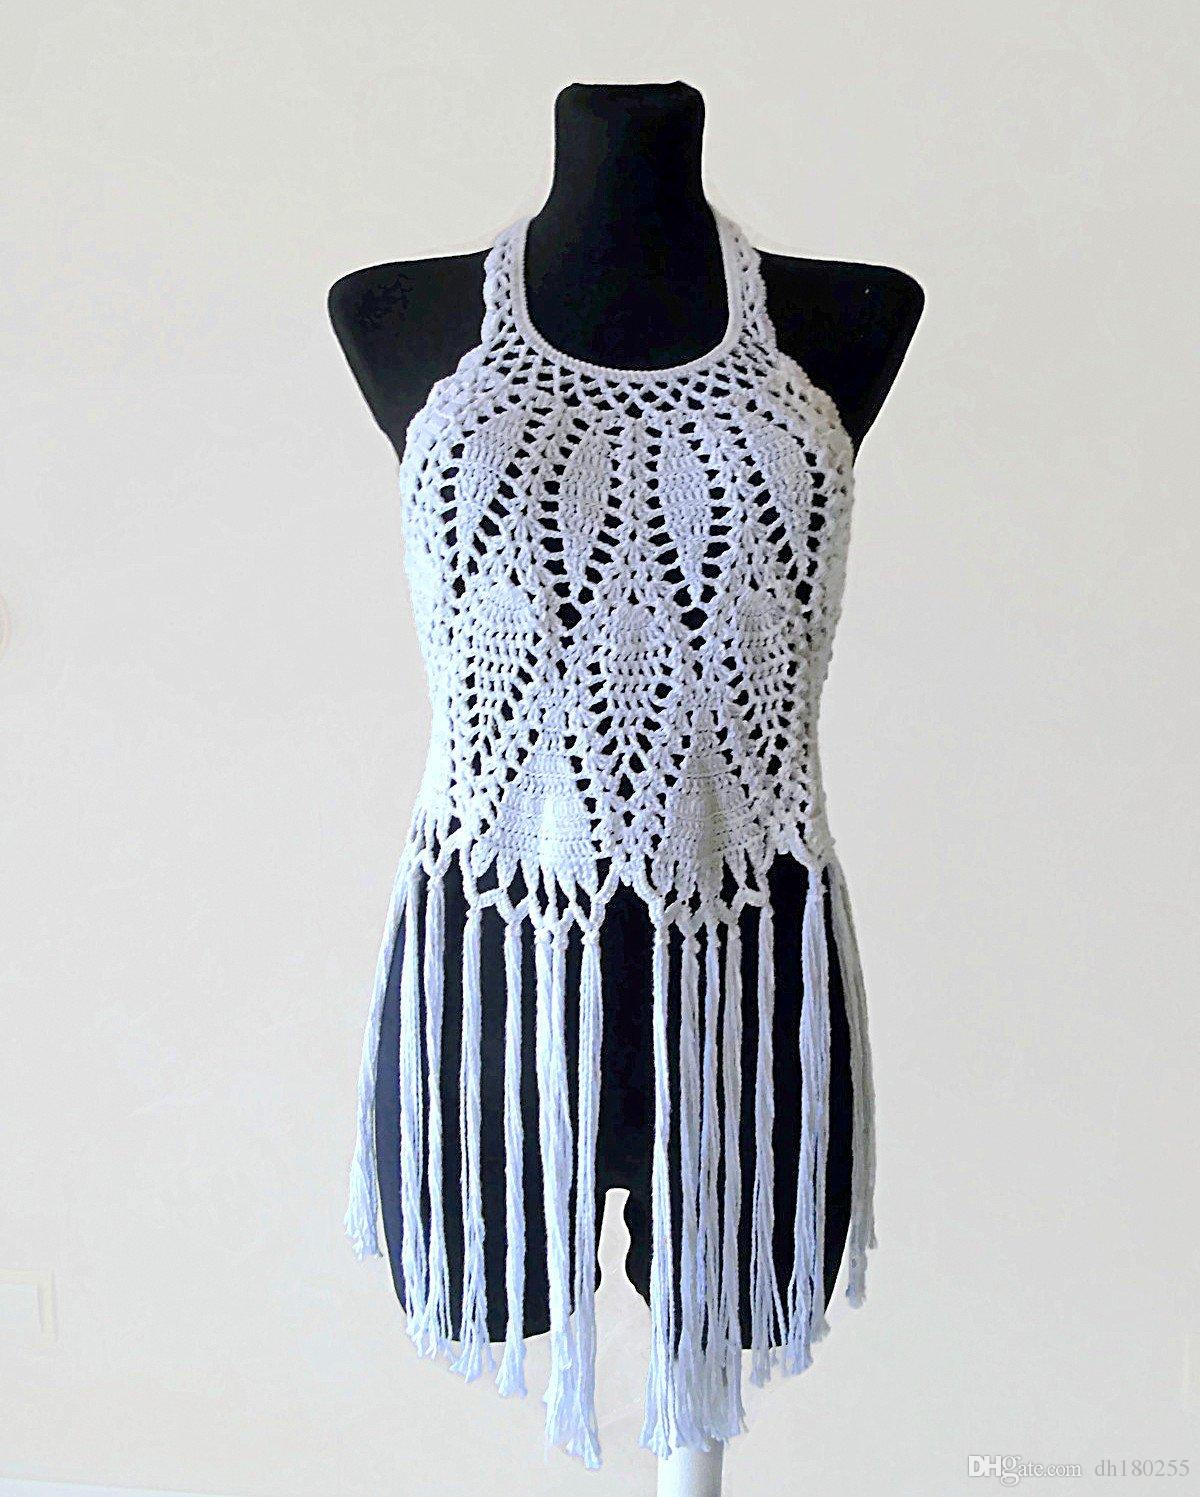 2019 Halter Crop Top Crochet Fringe Top Boho Hippie White Crochet